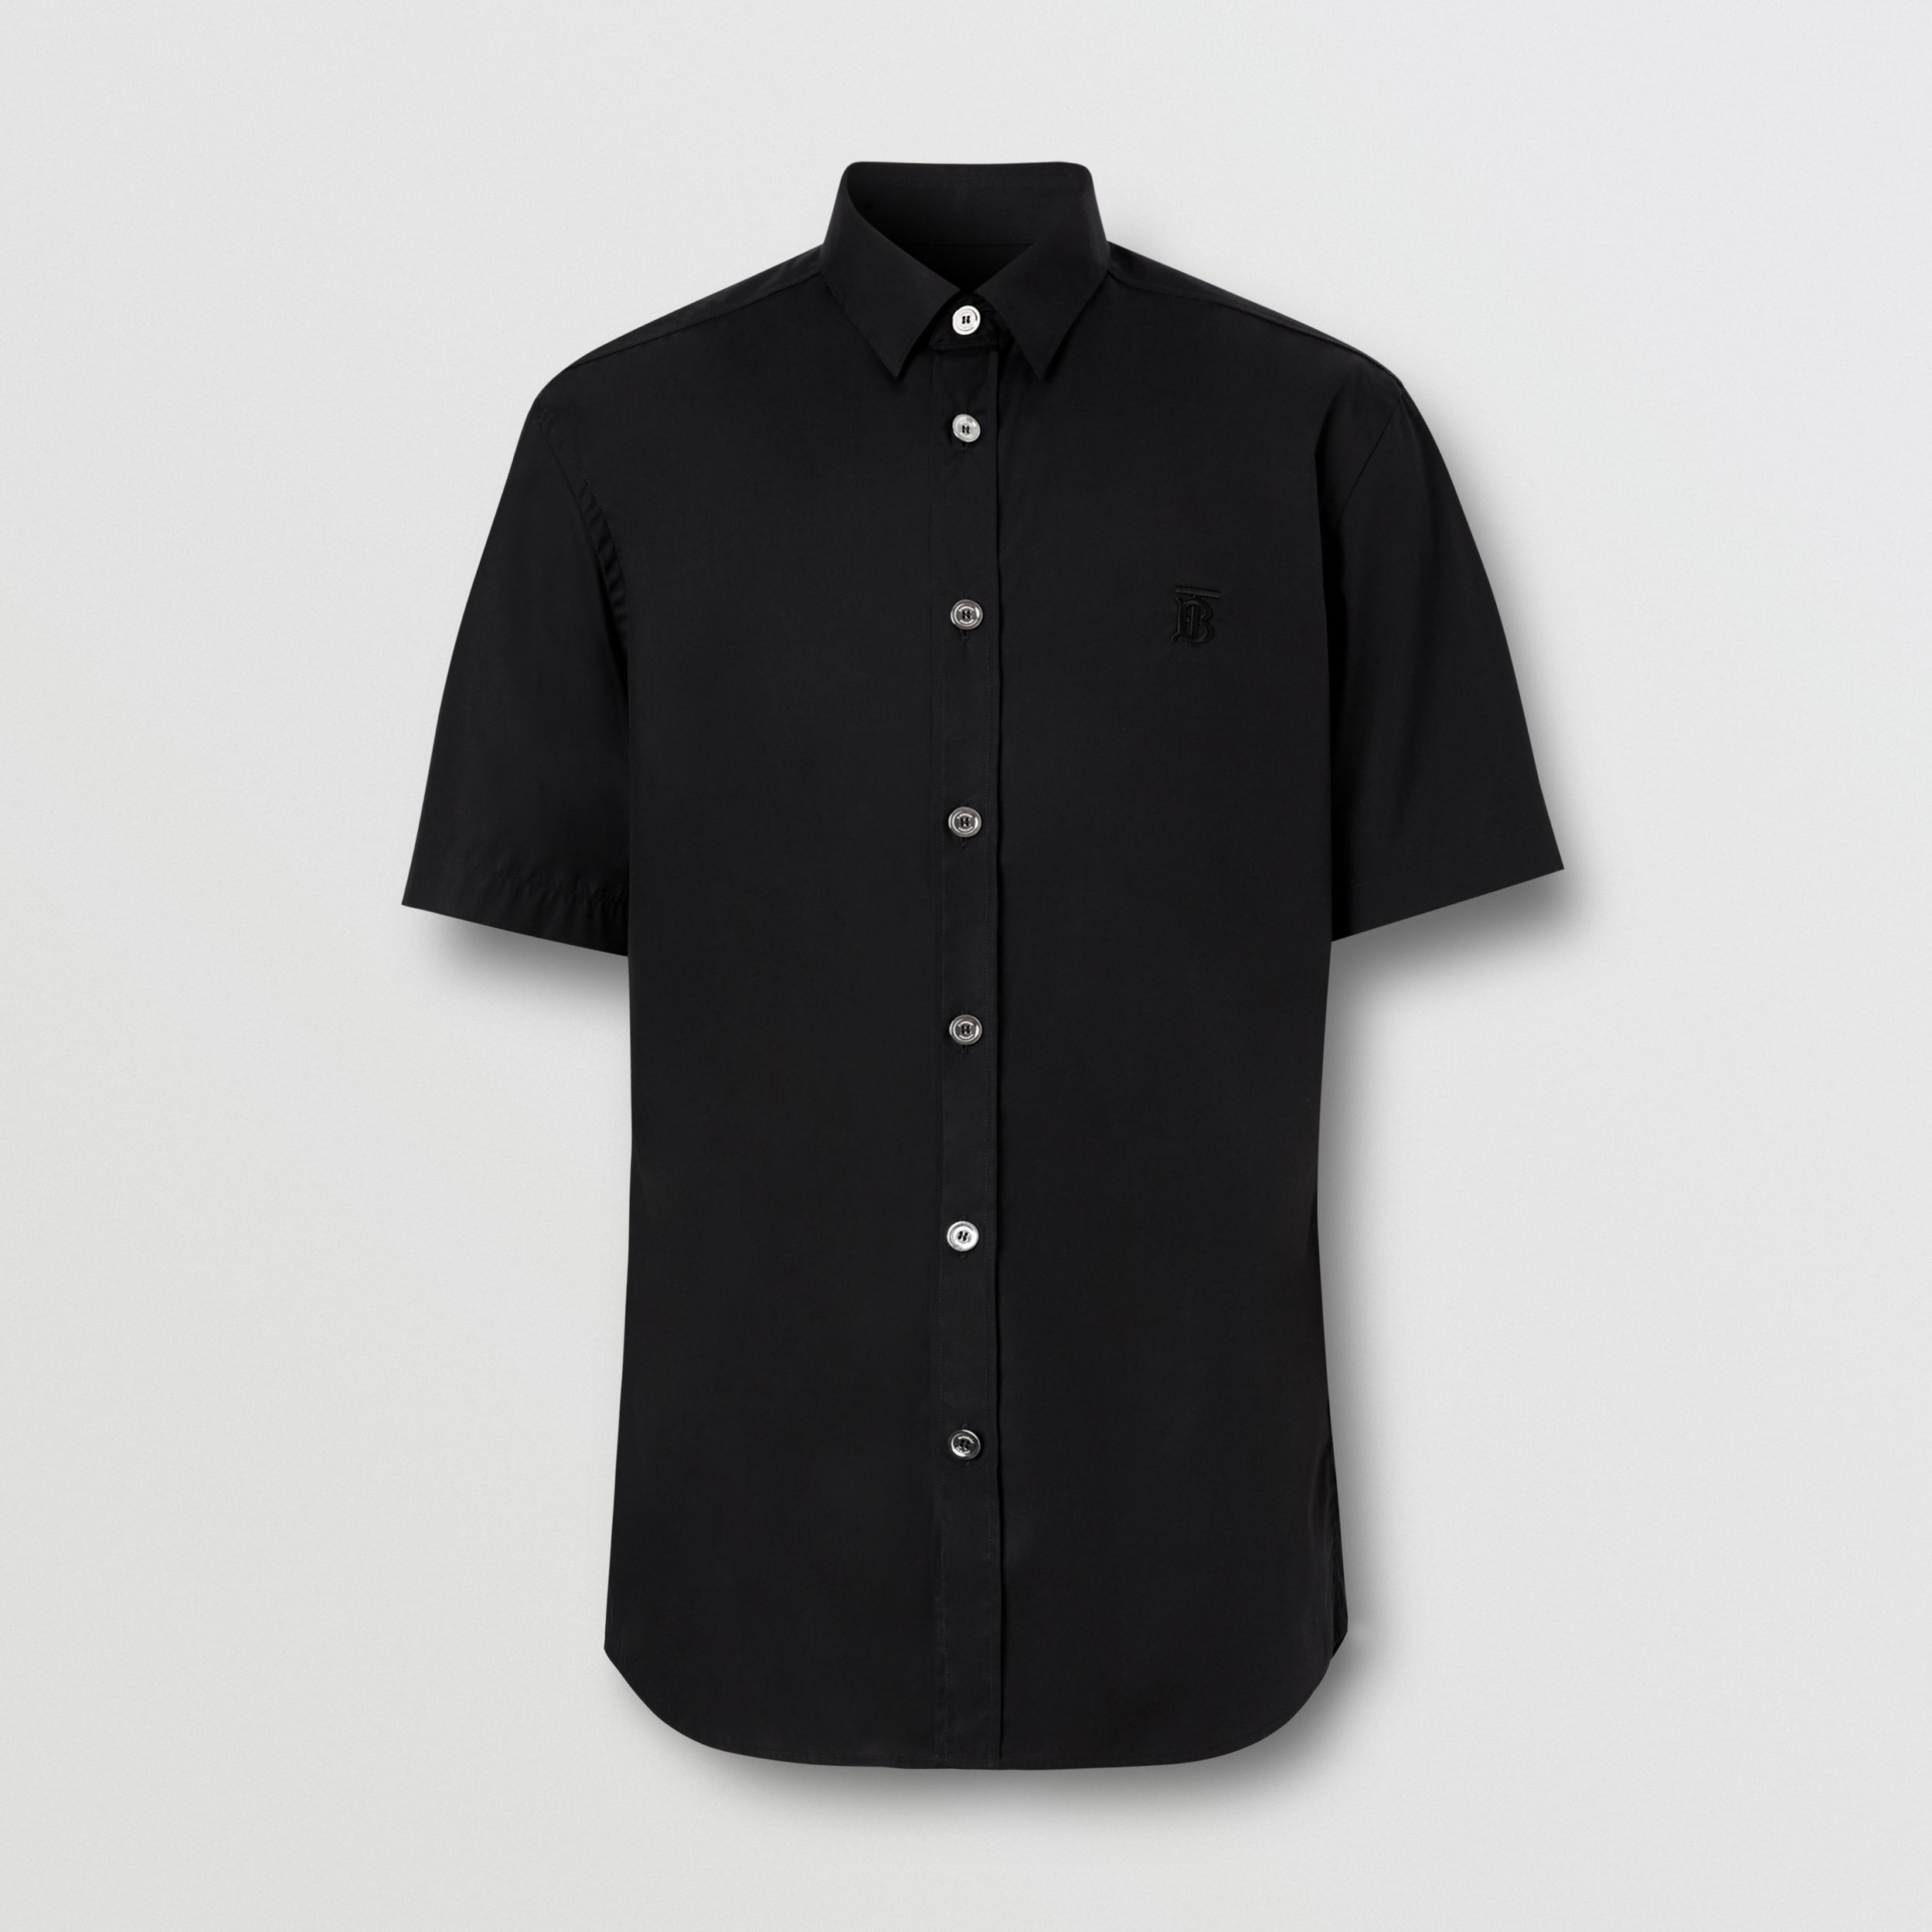 Short-sleeve Monogram Motif Stretch Cotton Shirt in Black - Men | Burberry United Kingdom - 4